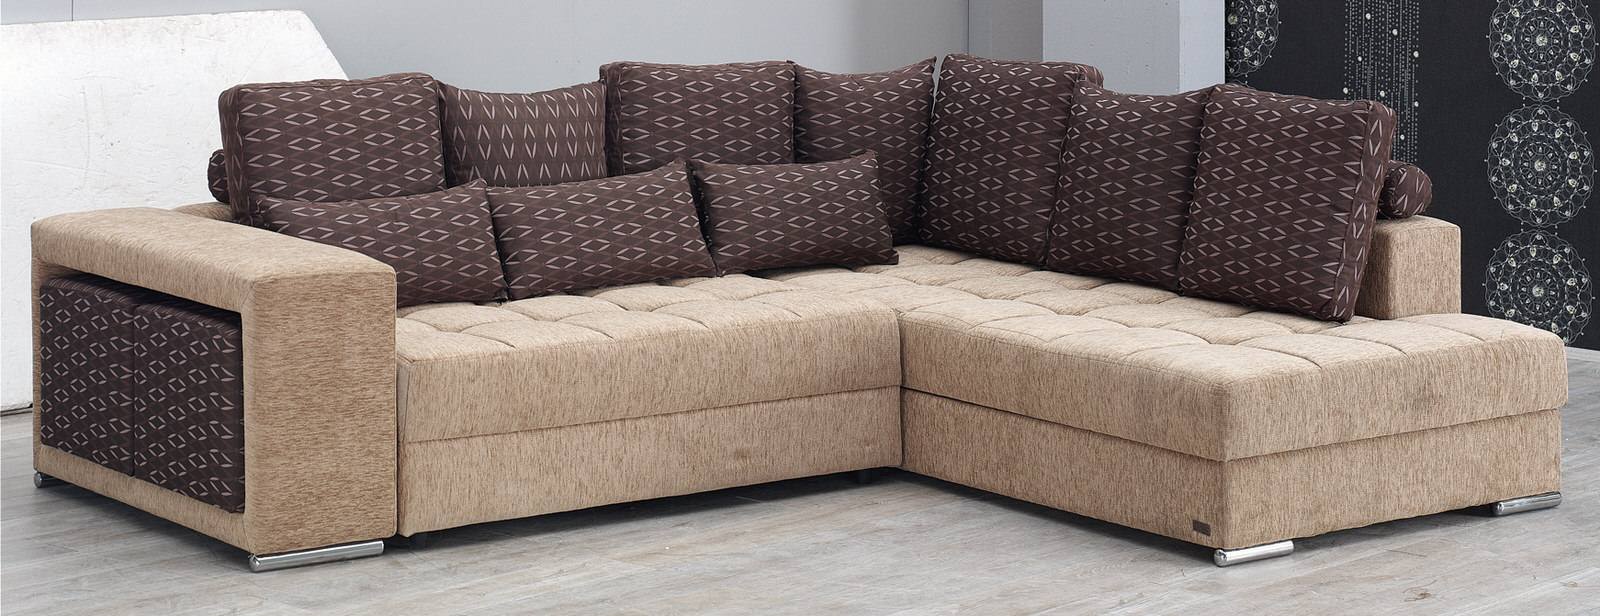 los angeles sofas best sleeper sofa mattress pad sectional set by empire furniture usa